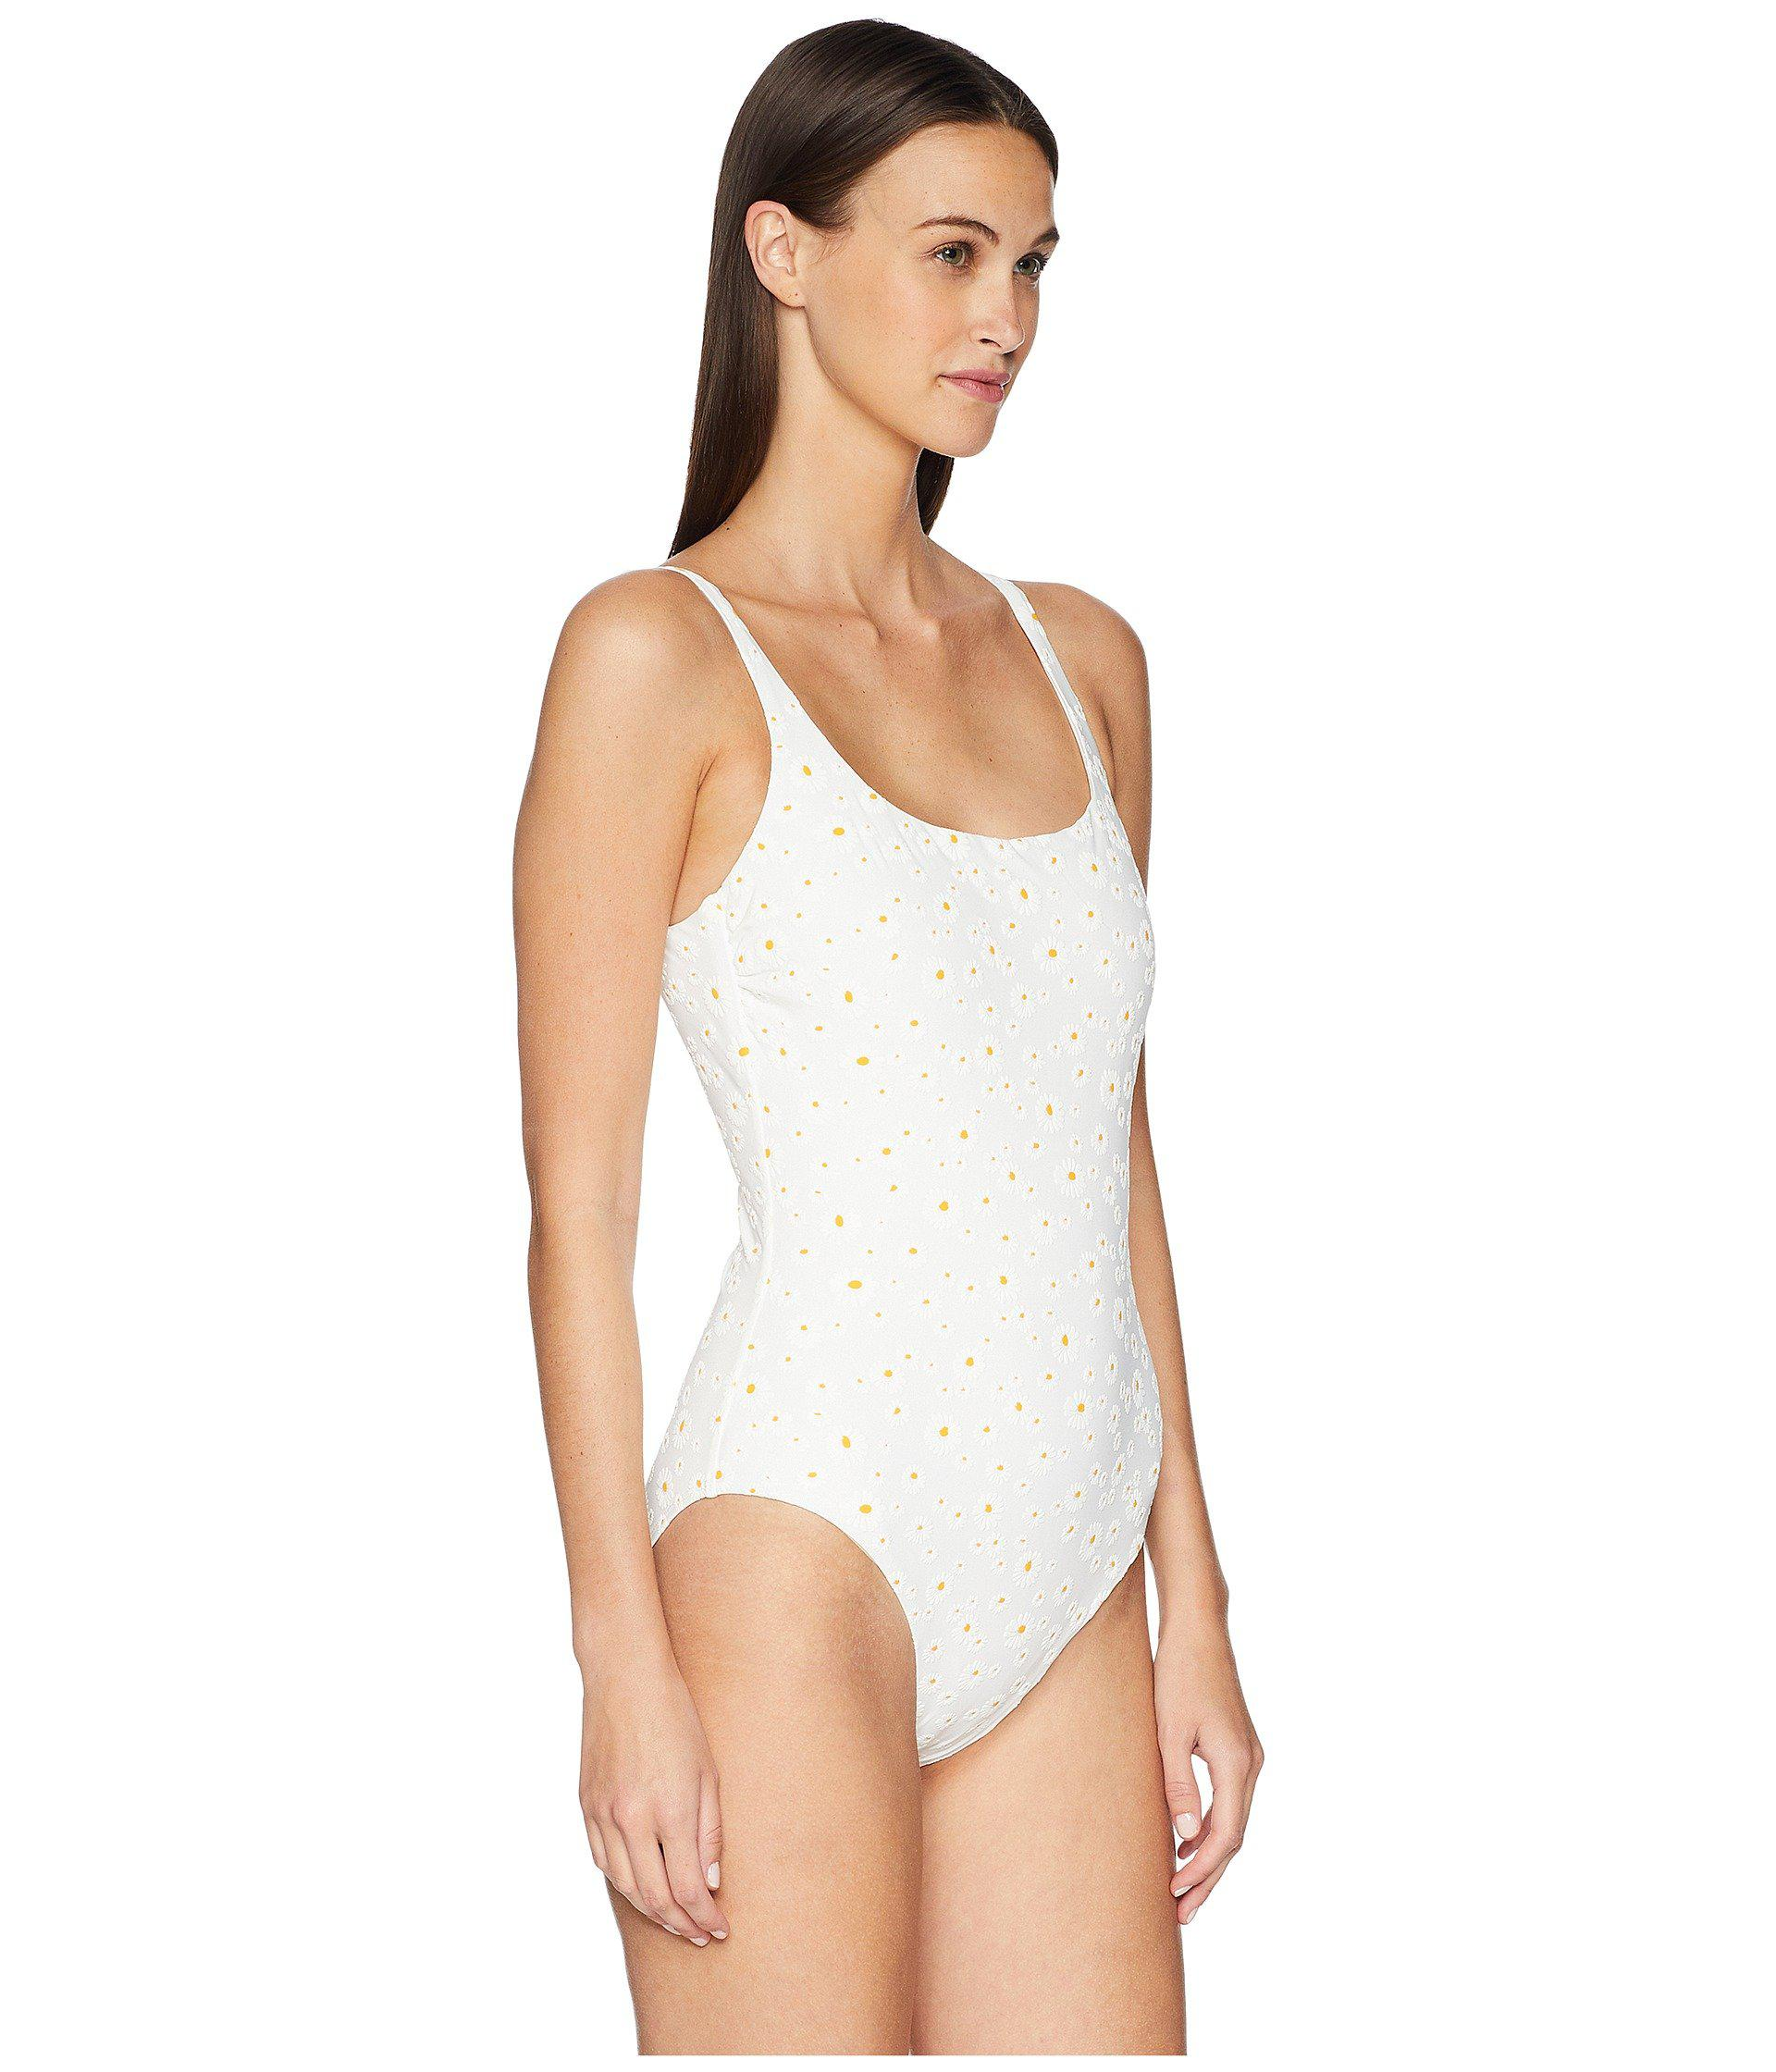 33341601f2e0c Tory Burch Daisy Tank-suit One-piece (ivory Daisy) Women's Swimsuits ...